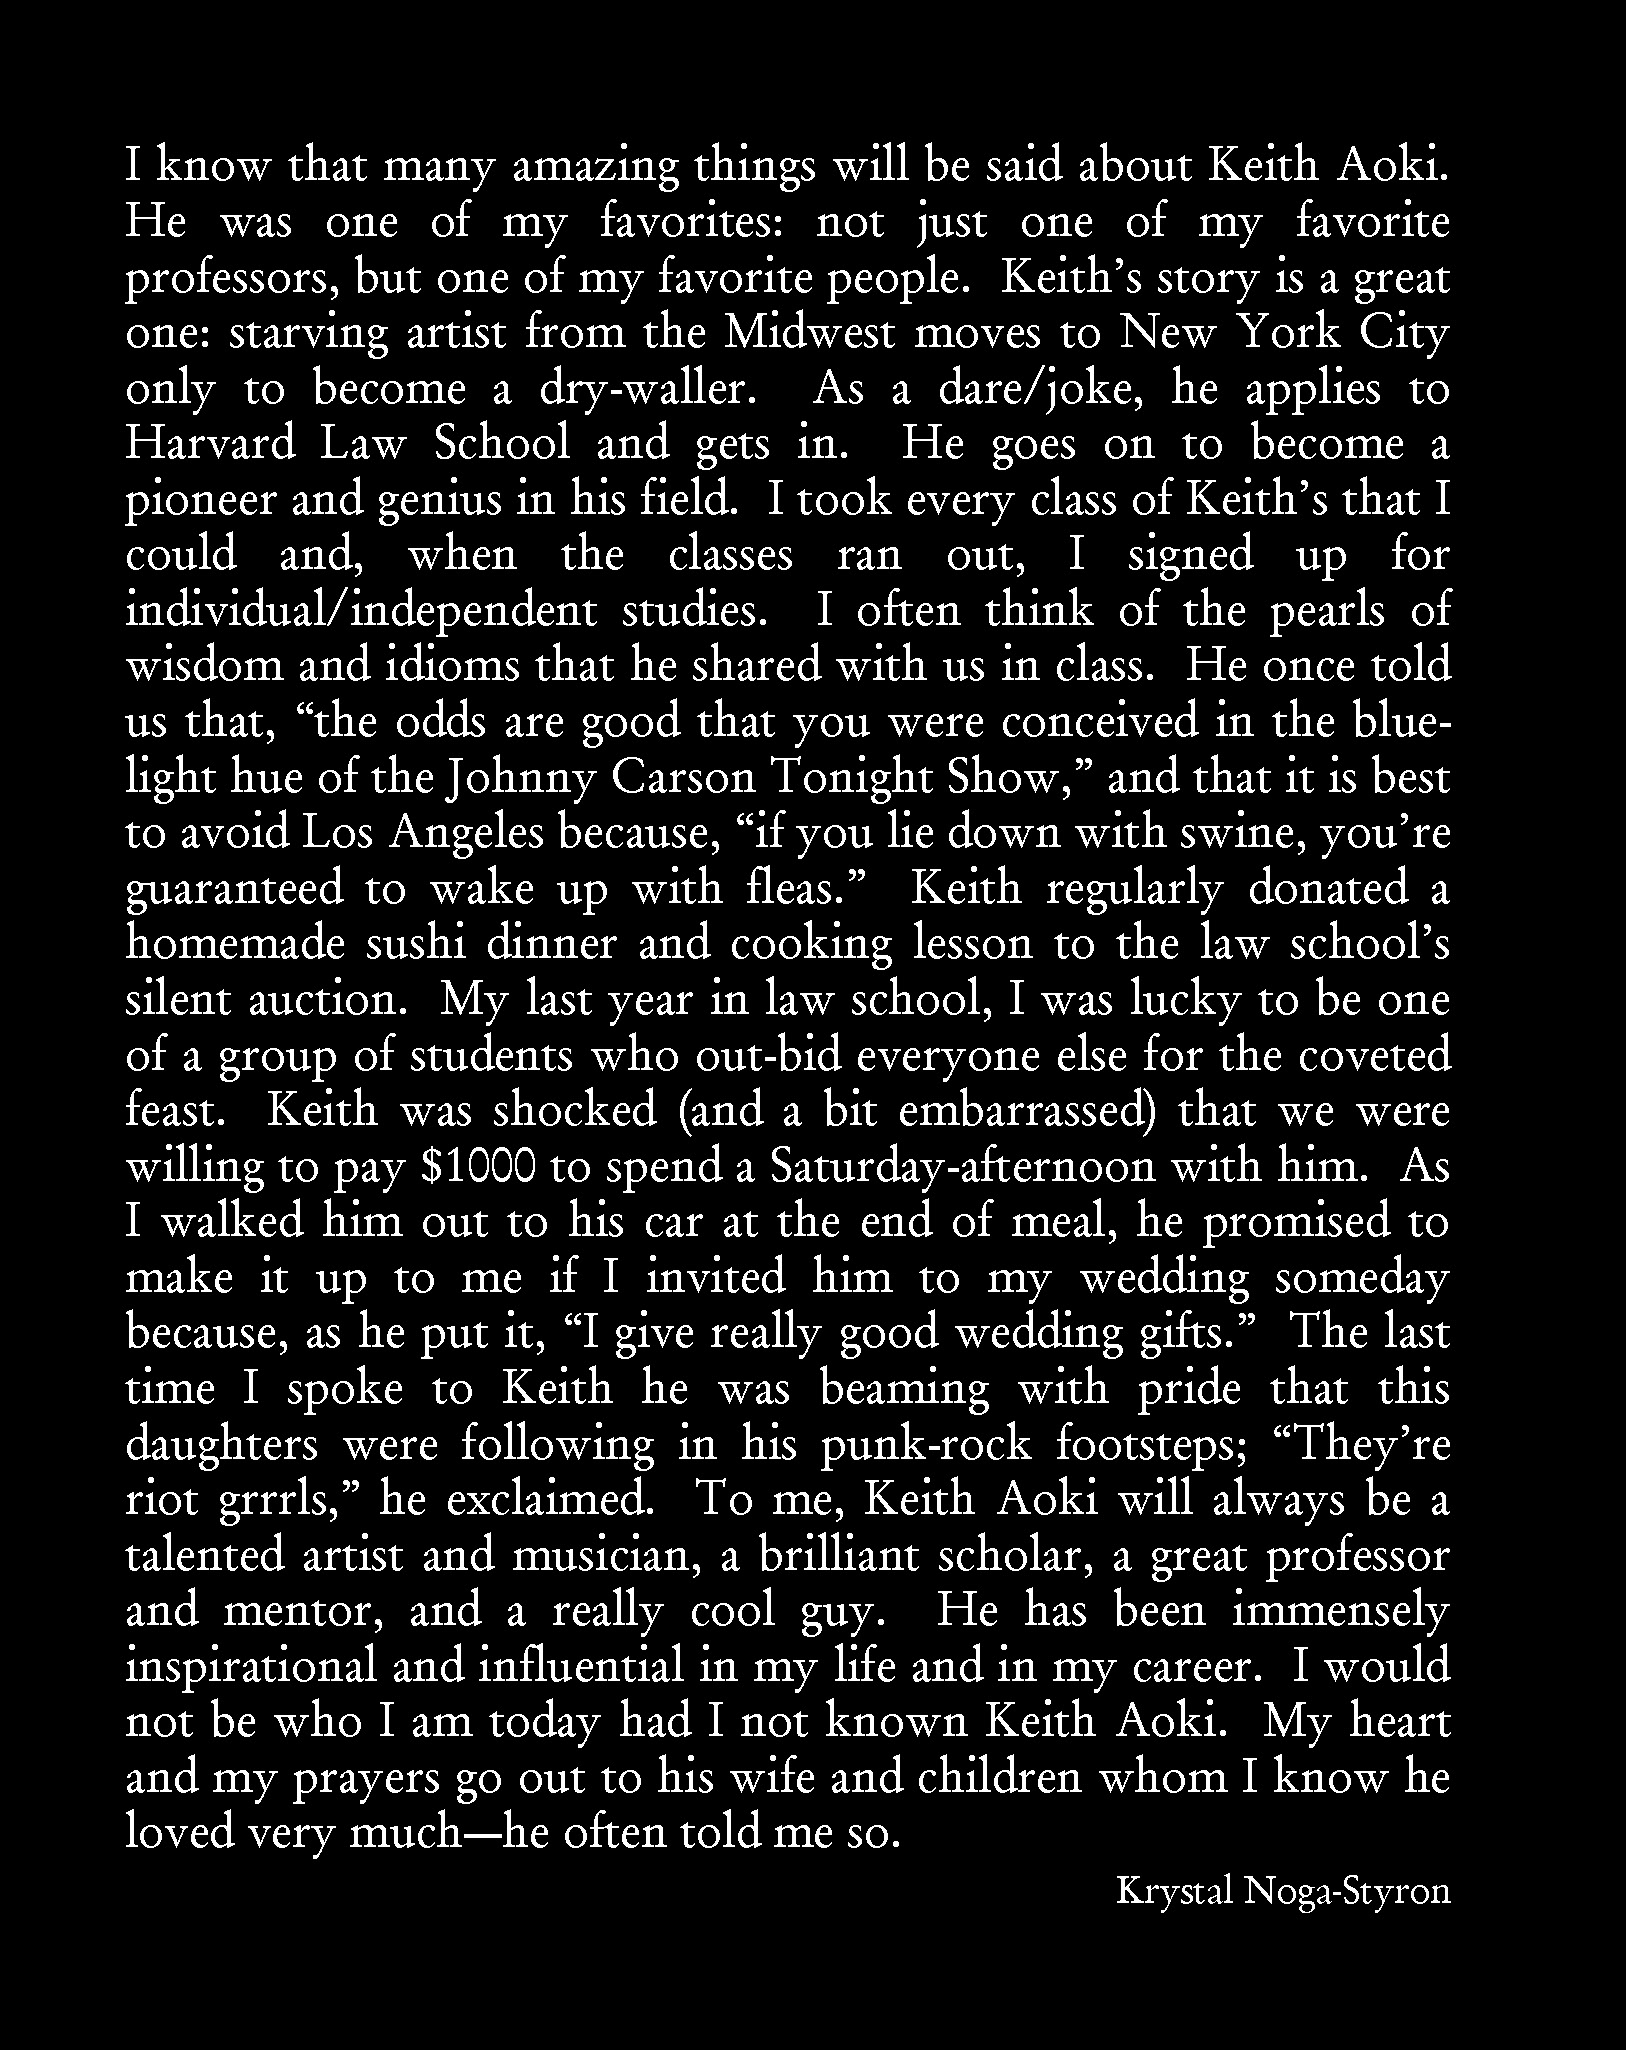 keithaokiremembrance_page_66